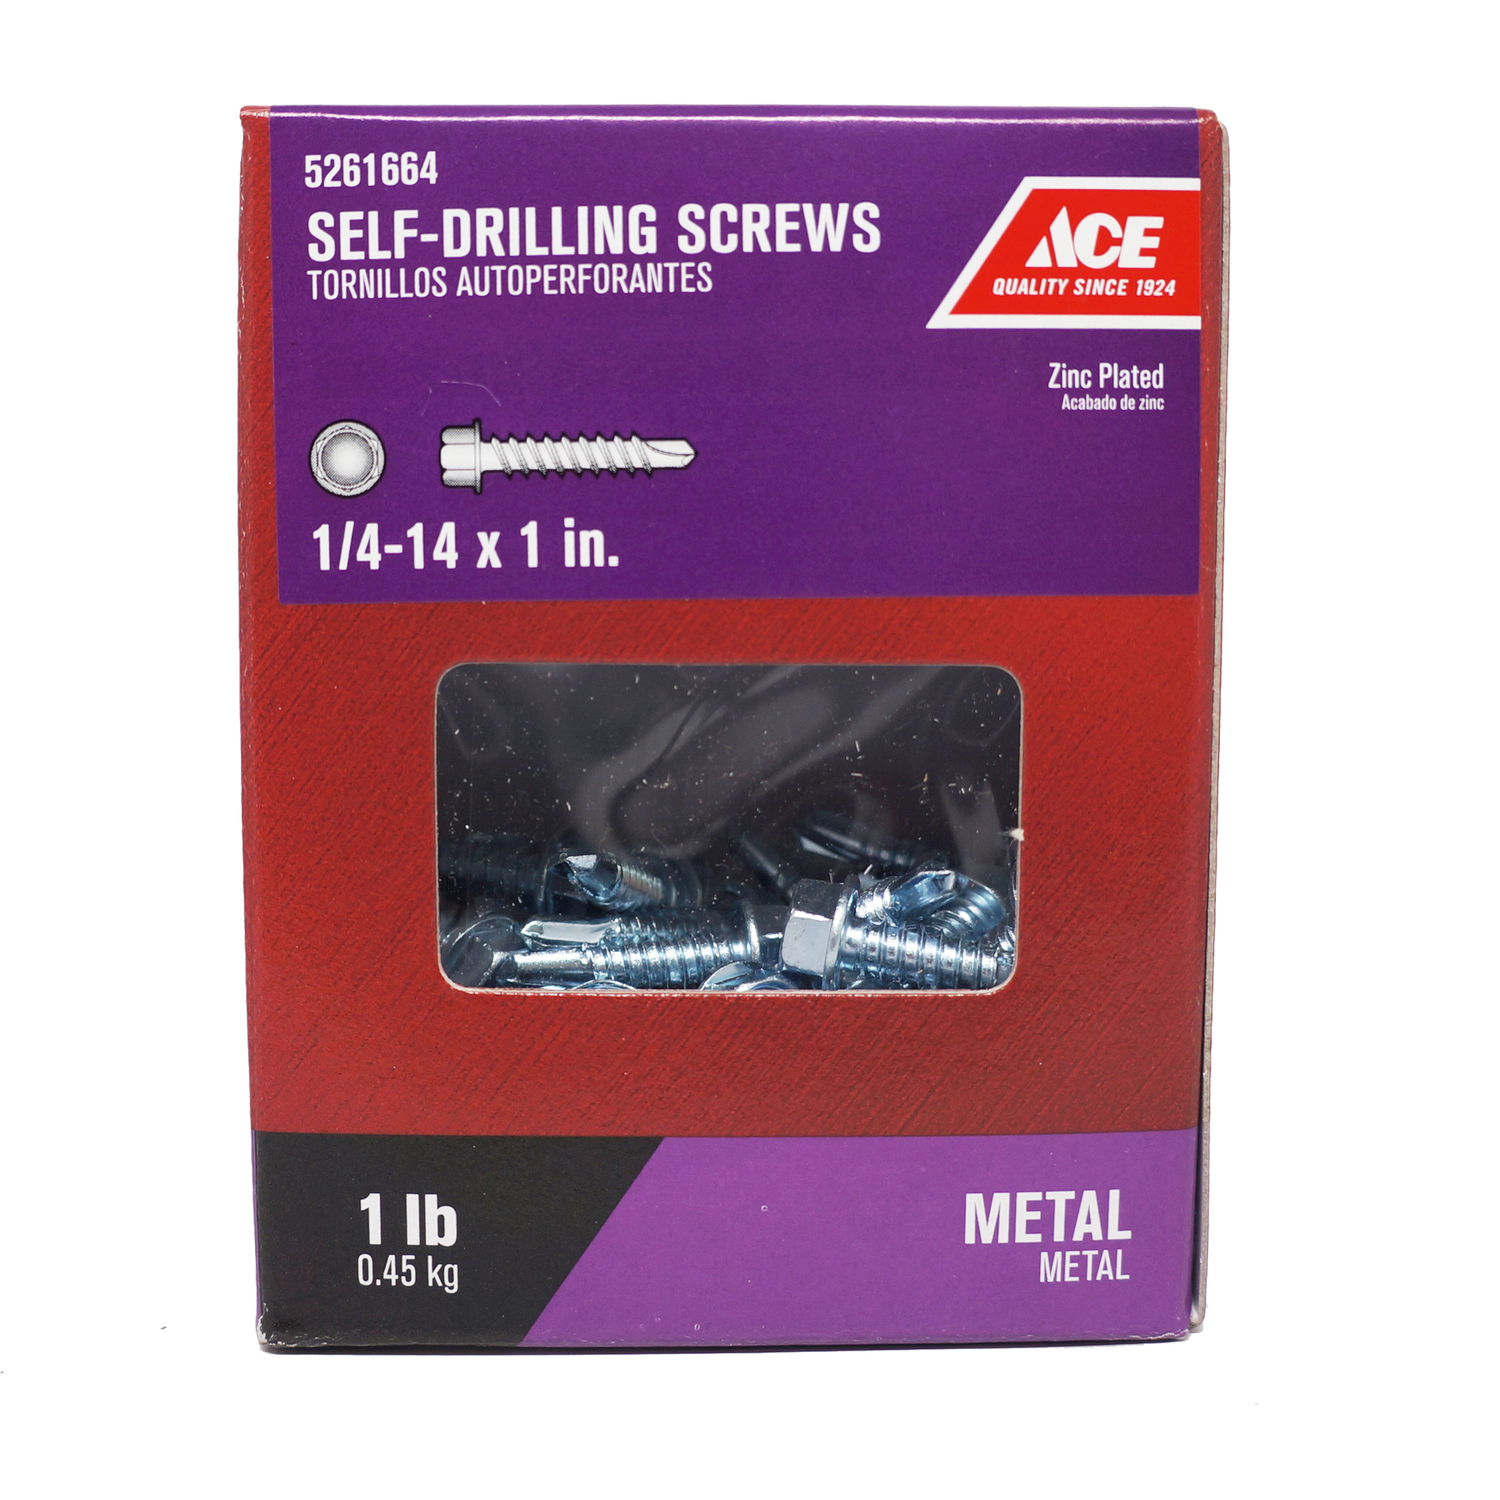 Ace  1/4-14 Sizes  x 1 in. L Hex  Hex Washer Head Self- Drilling Screws  Steel  1 lb. Zinc-Plated